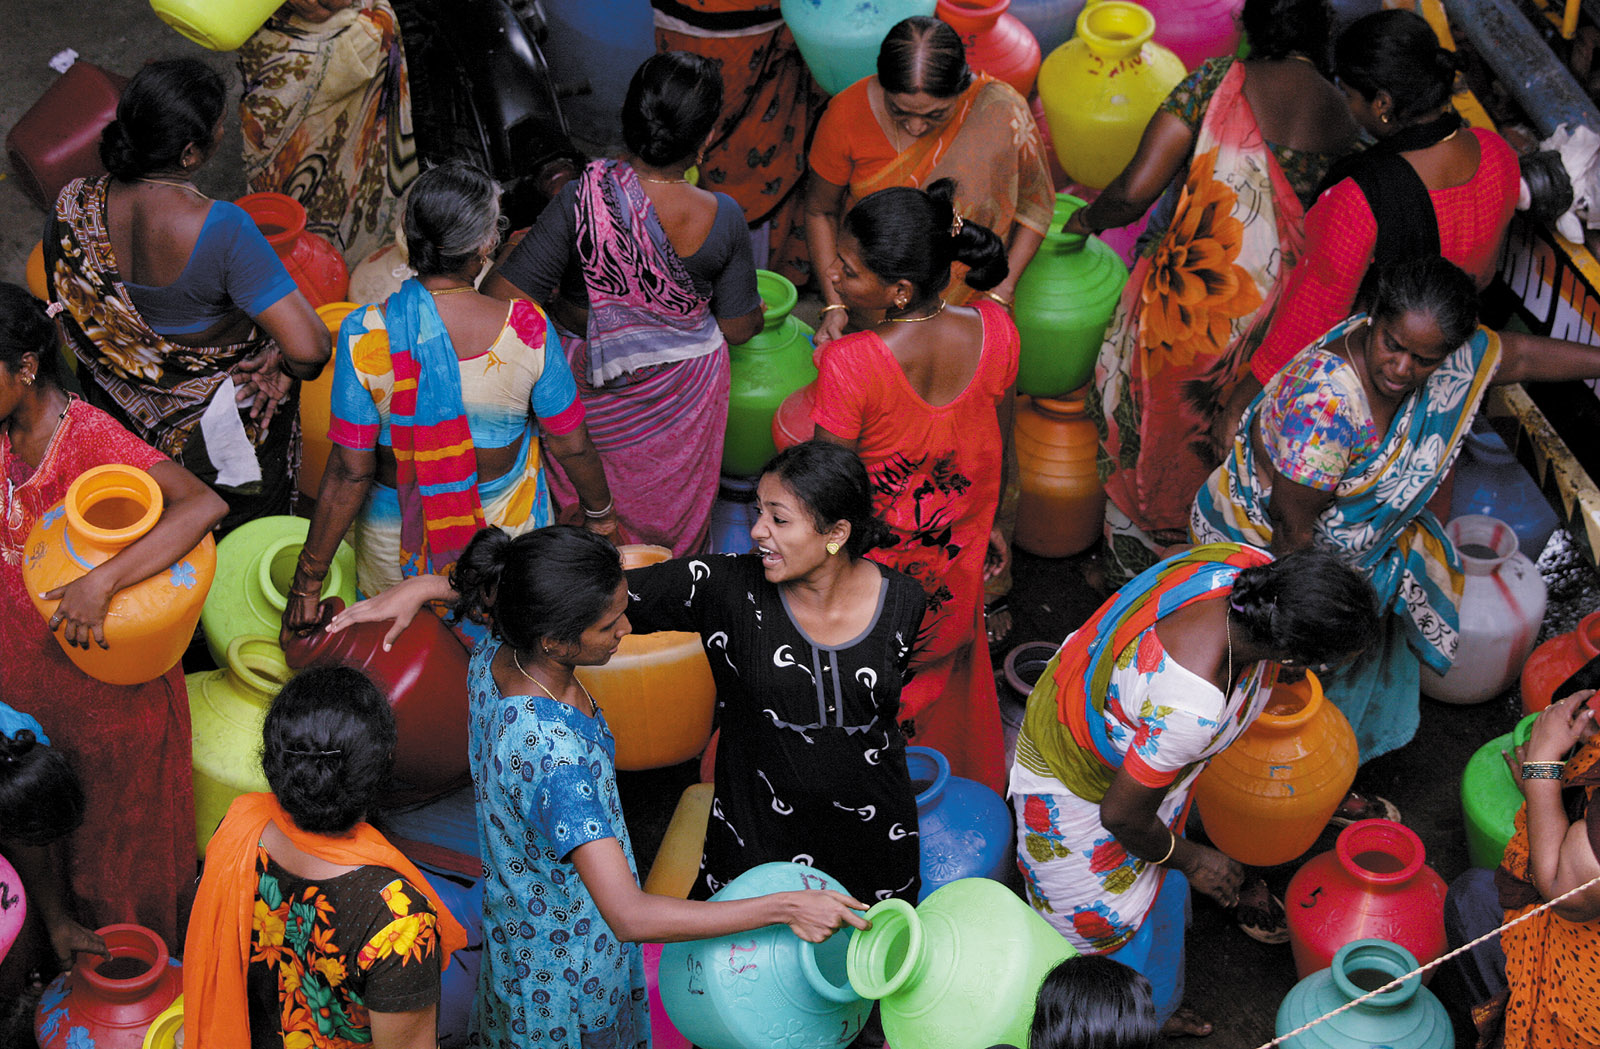 Residents filling containers with water from a municipal tanker in Chennai, India, June 2019